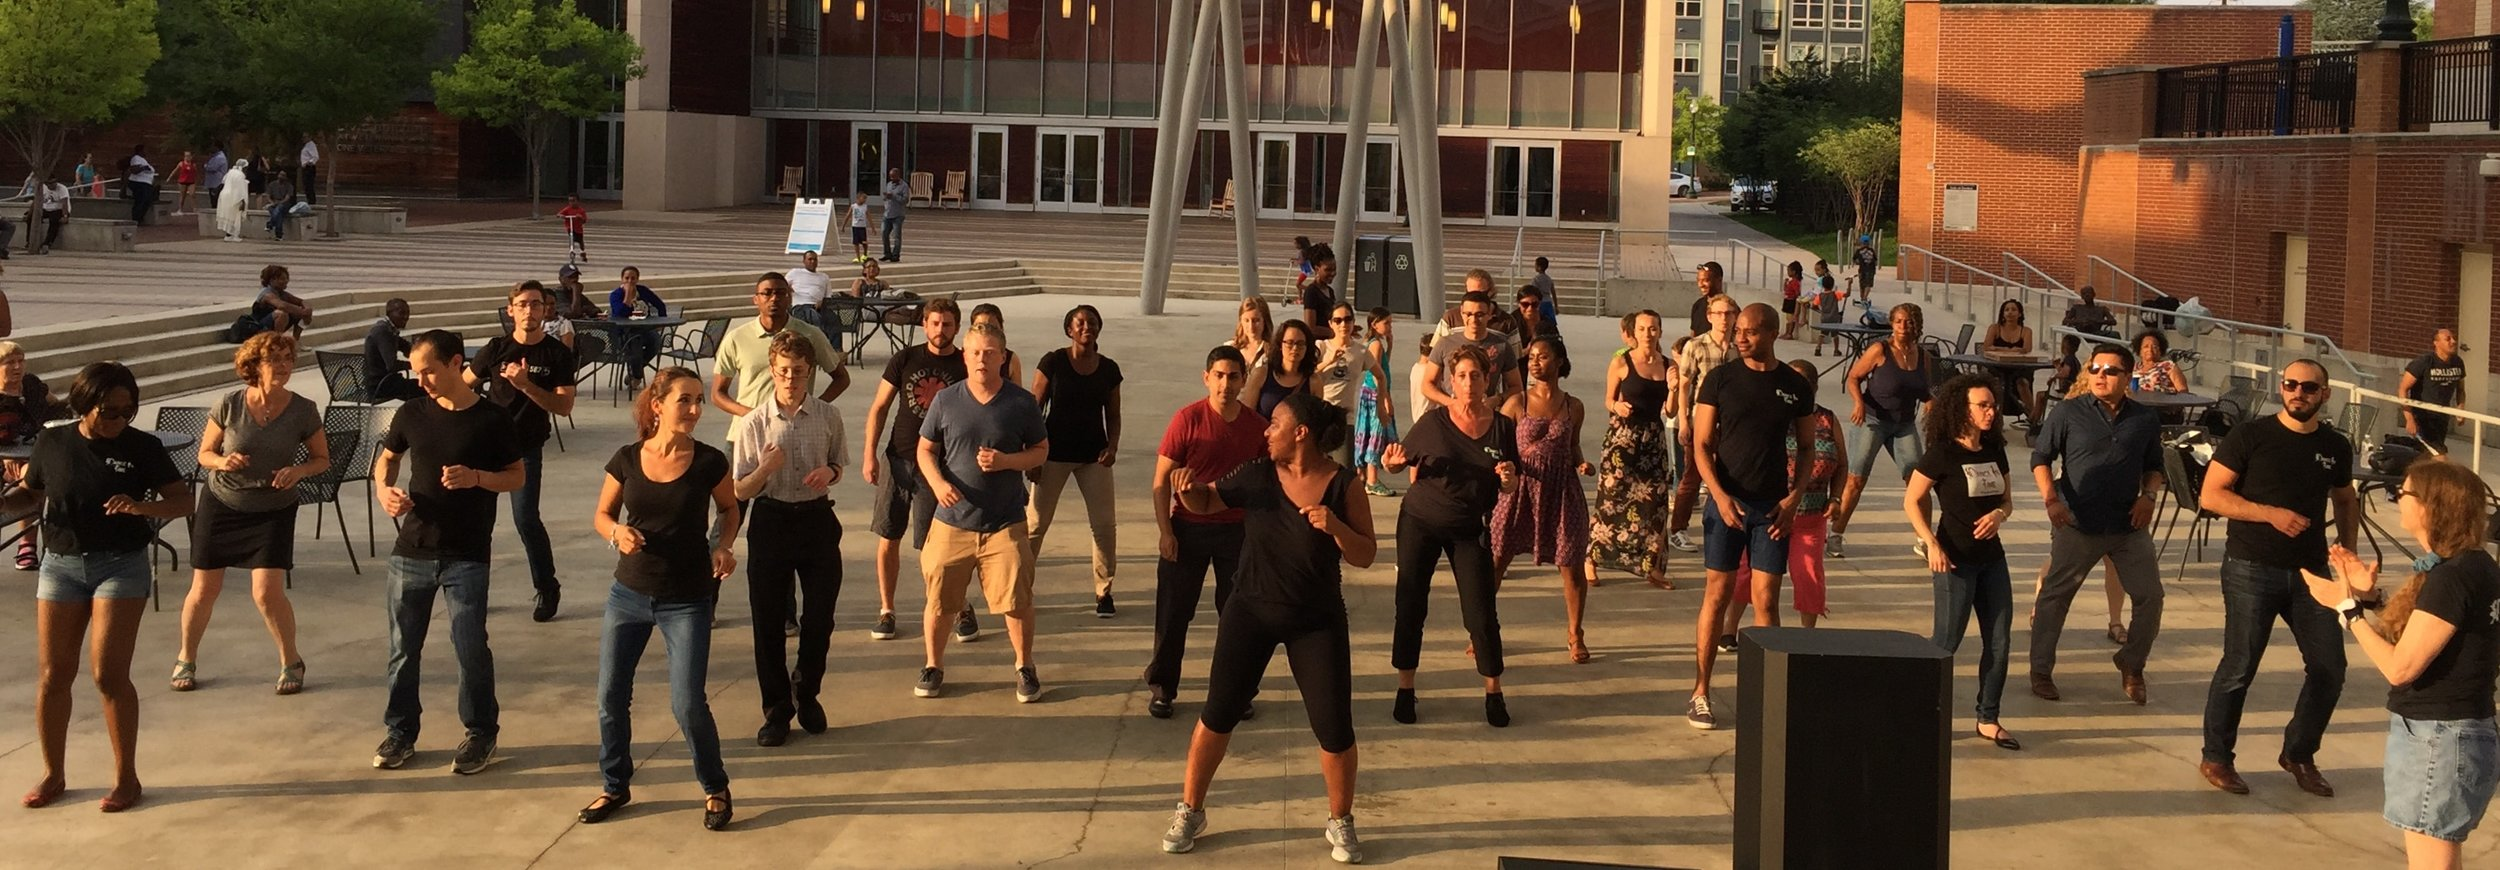 Salsa Footwork Class At Veterans' Plaza In Silver Spring